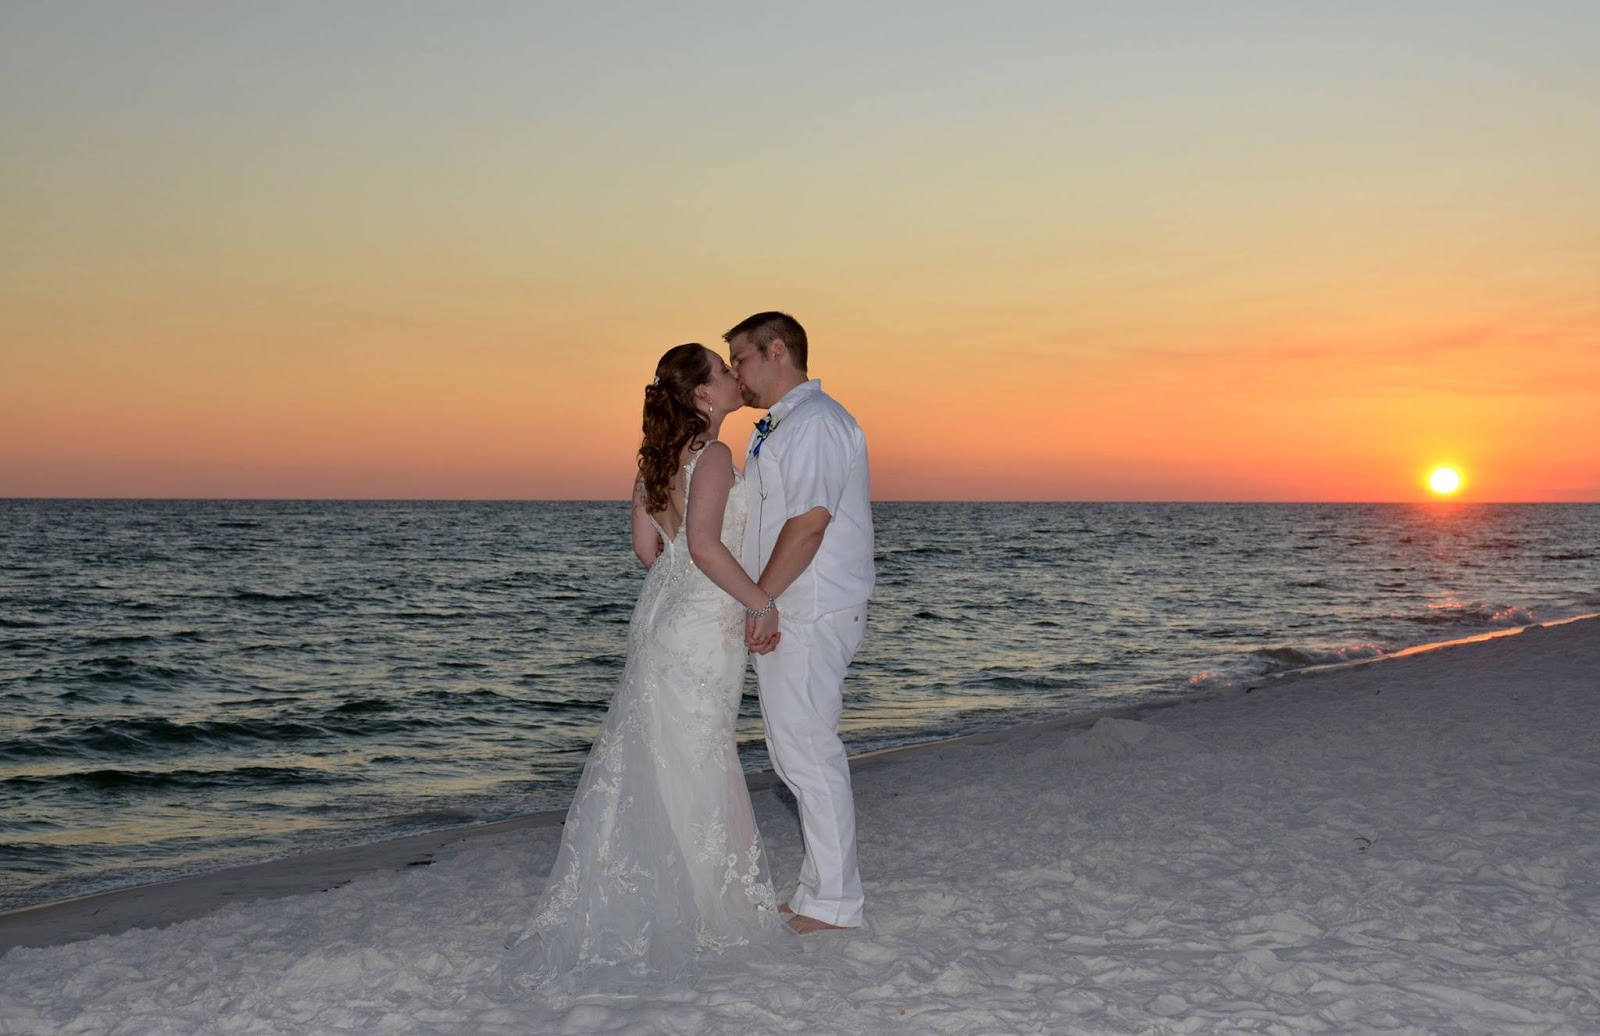 Sunset Barefoot Beach Weddings In Destin Florida